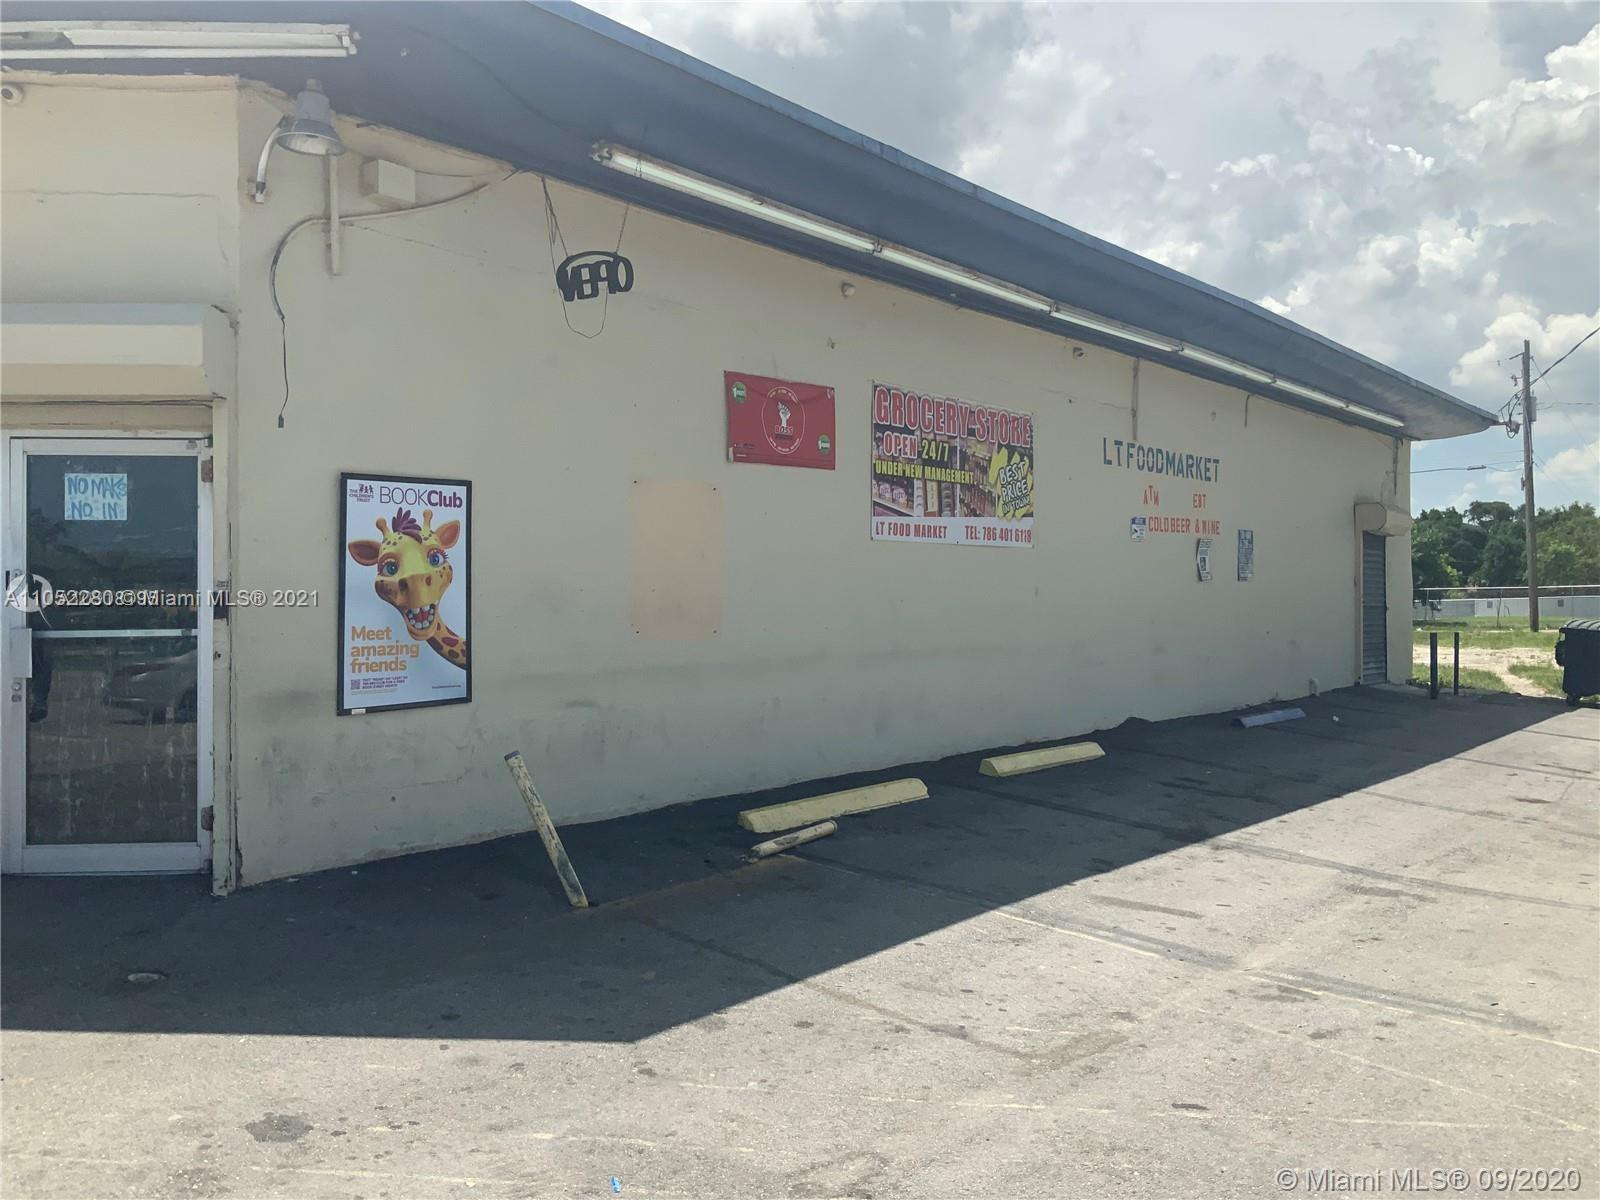 Property is Lease For $2675.00 Monthly. ROOF was replaced in 2013 as per owners. Lease expire March 17 2022. This Property is also a great opportunity to build a multi Family Building.